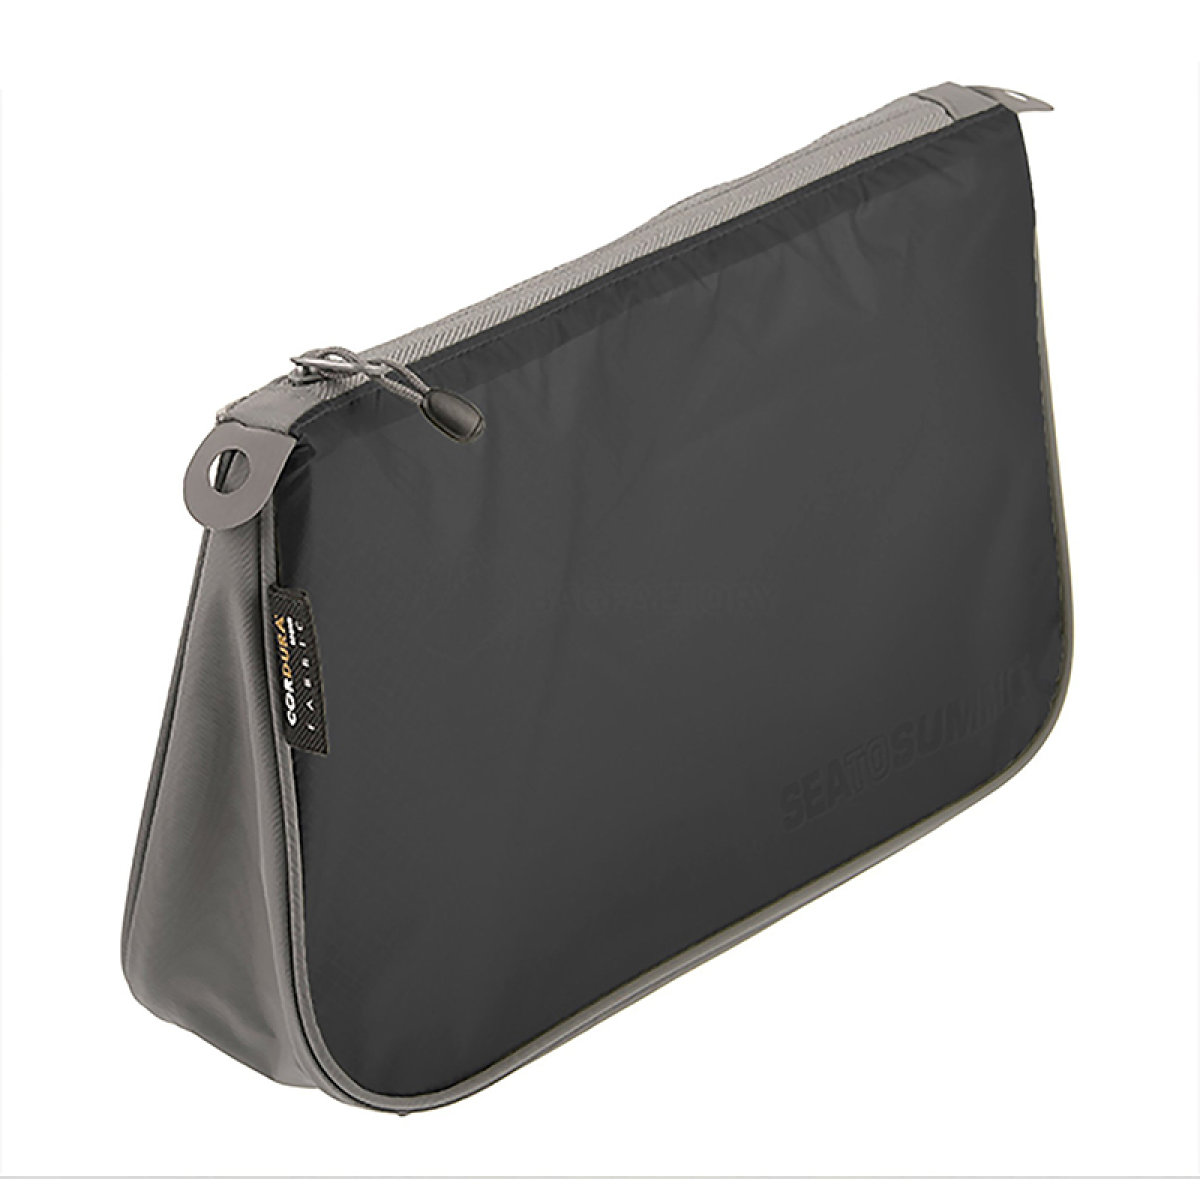 Косметичка Sea to Summit TL See Pouch Black/Grey, M/2L